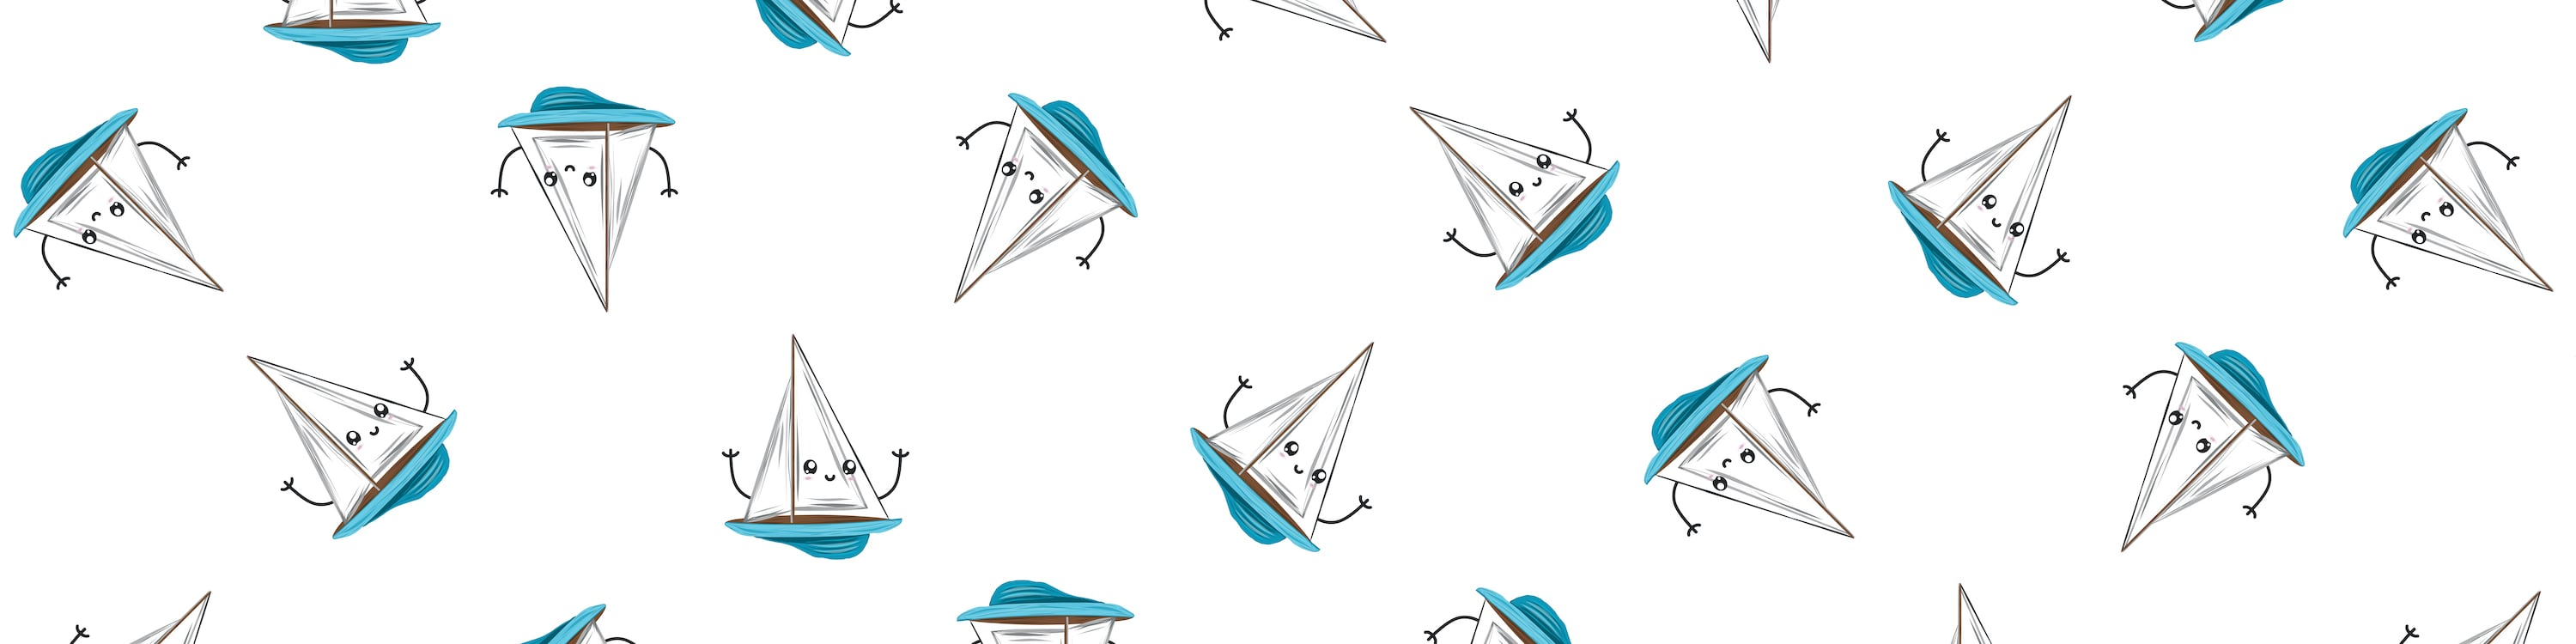 Repeating Patteern of Float My Boat Card Illustration